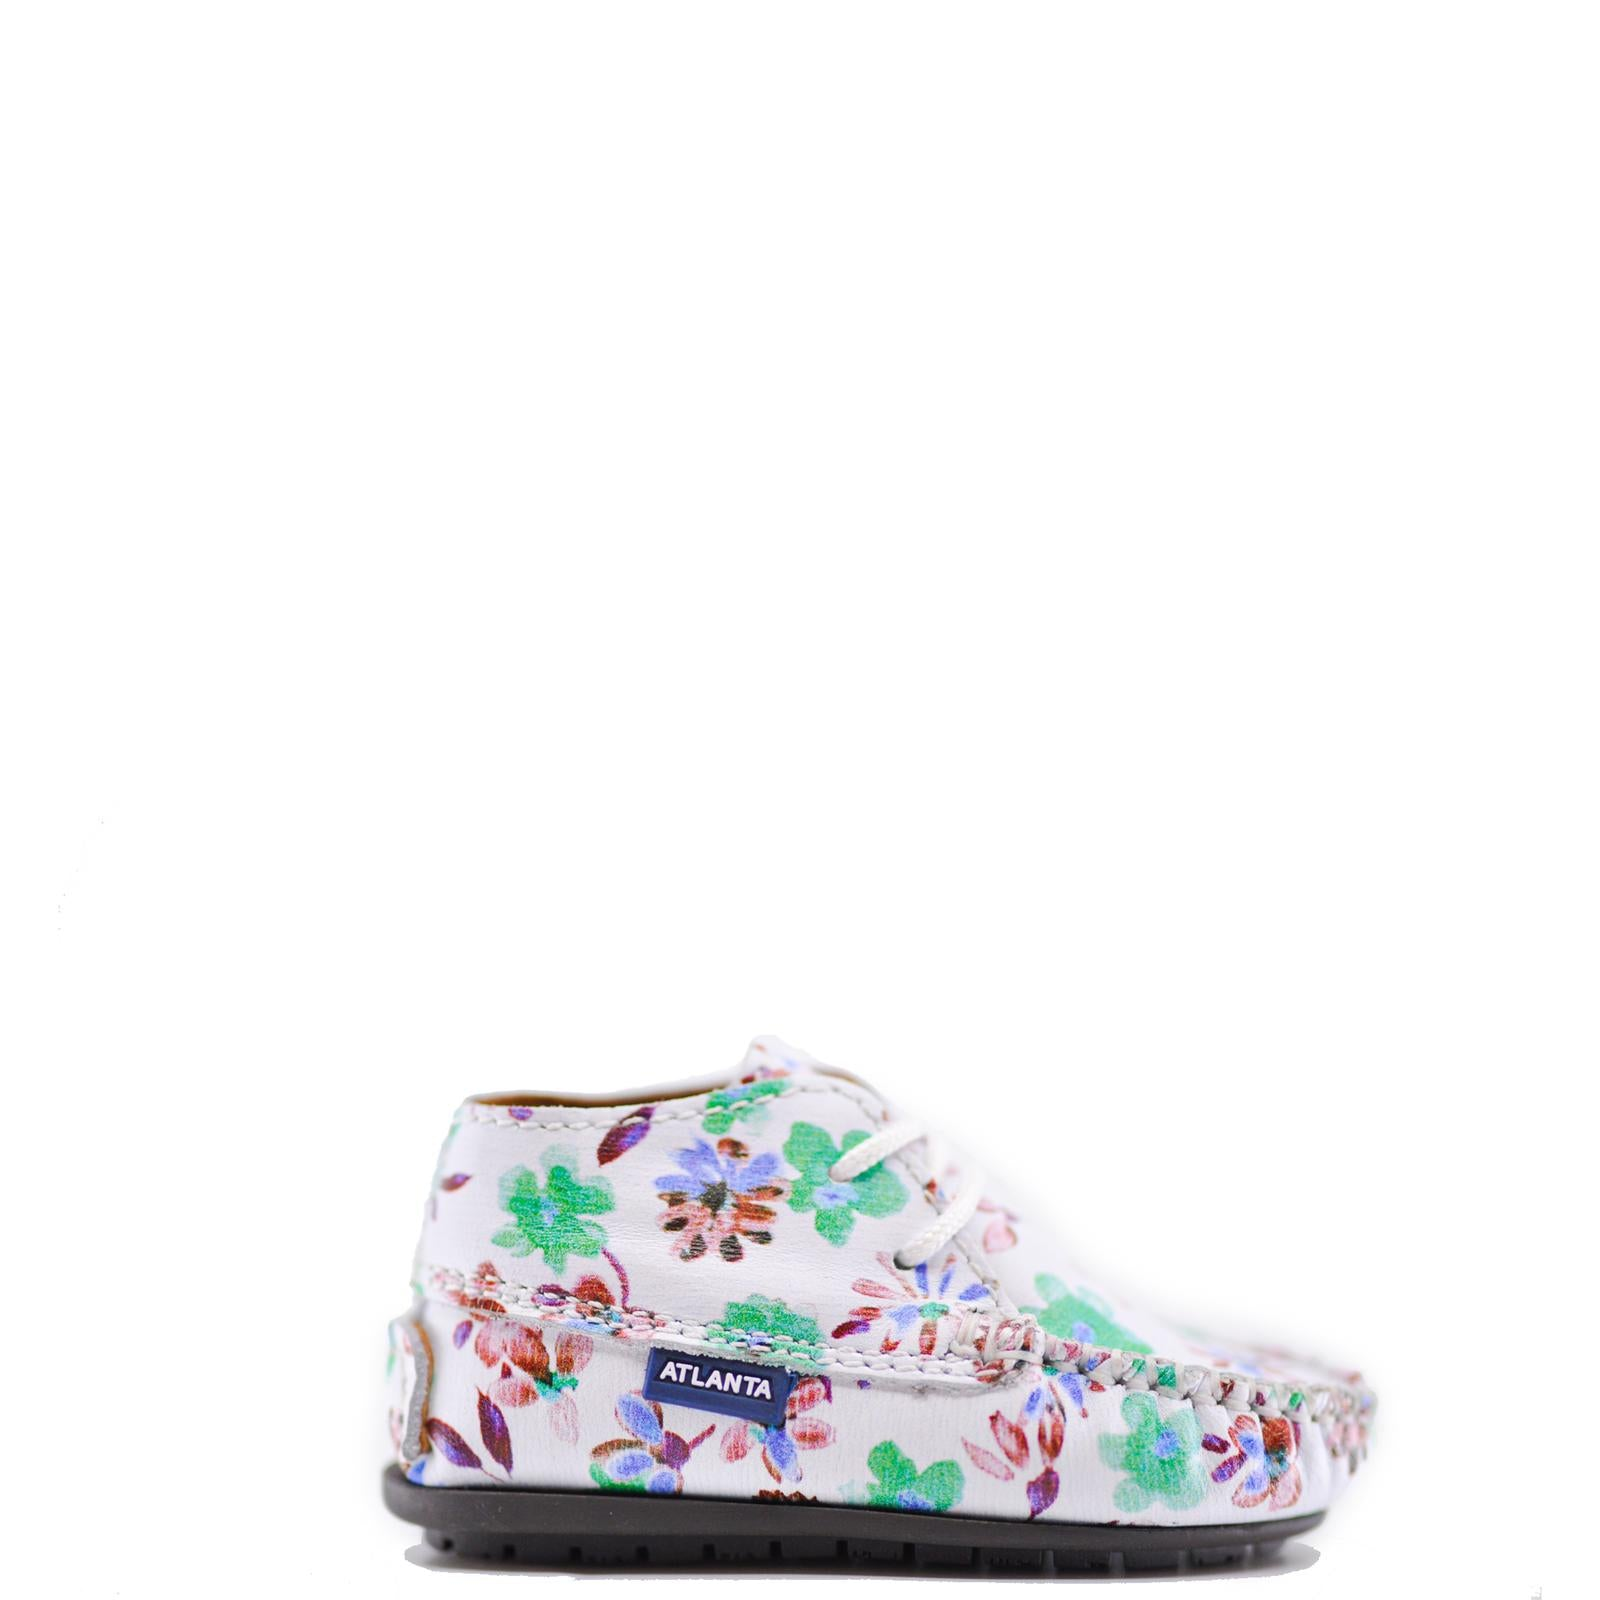 Atlanta Mocassin Multi Floral Baby Bootie-Tassel Children Shoes